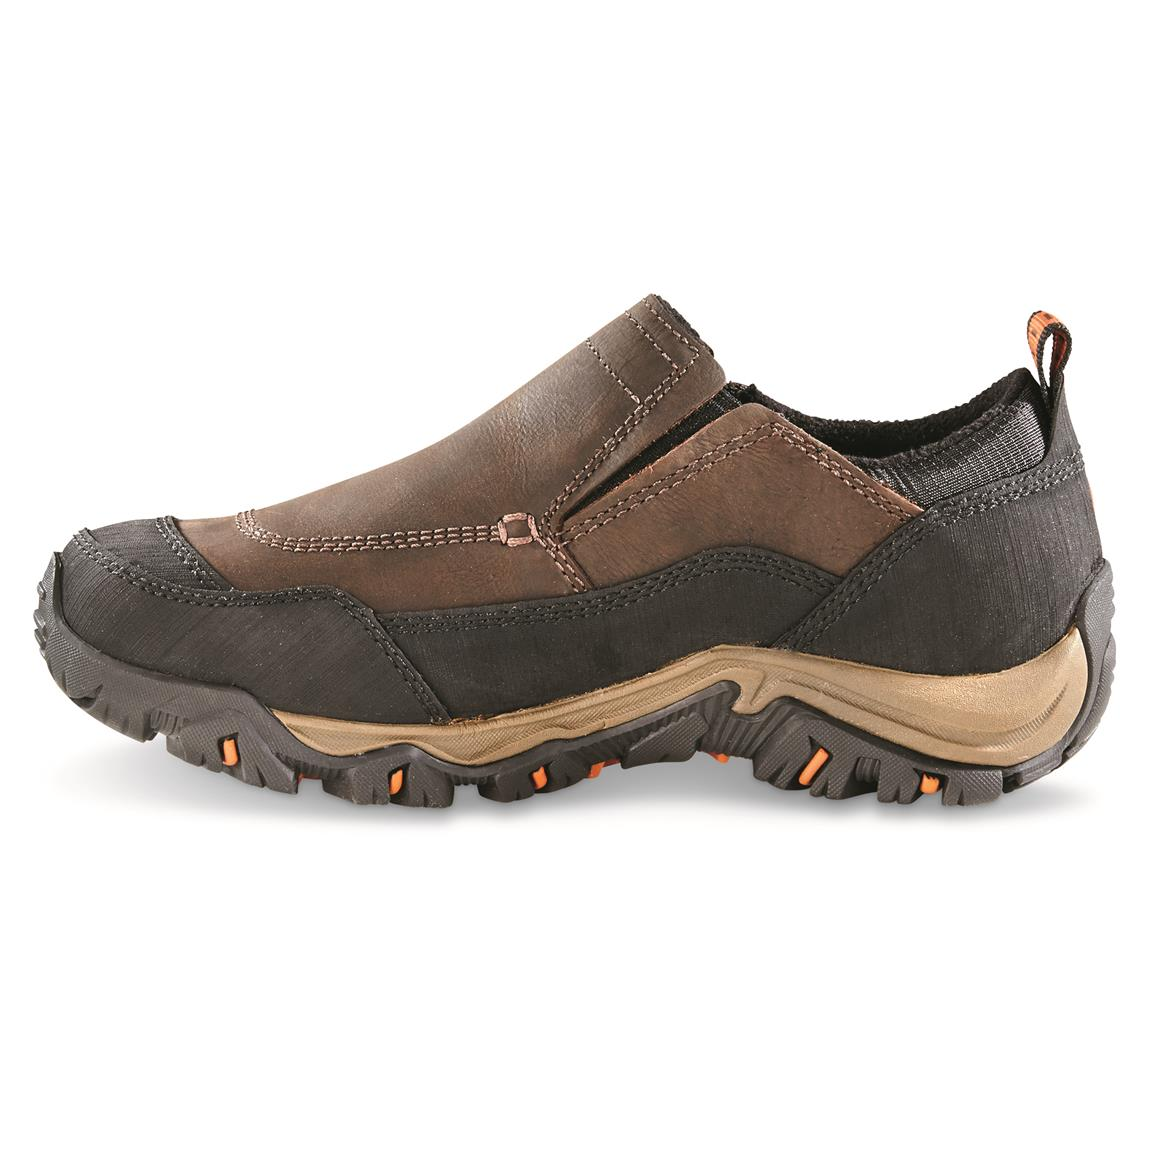 Merrell Polarand Rove Waterproof Moc Toe Slip-on Shoes, Side